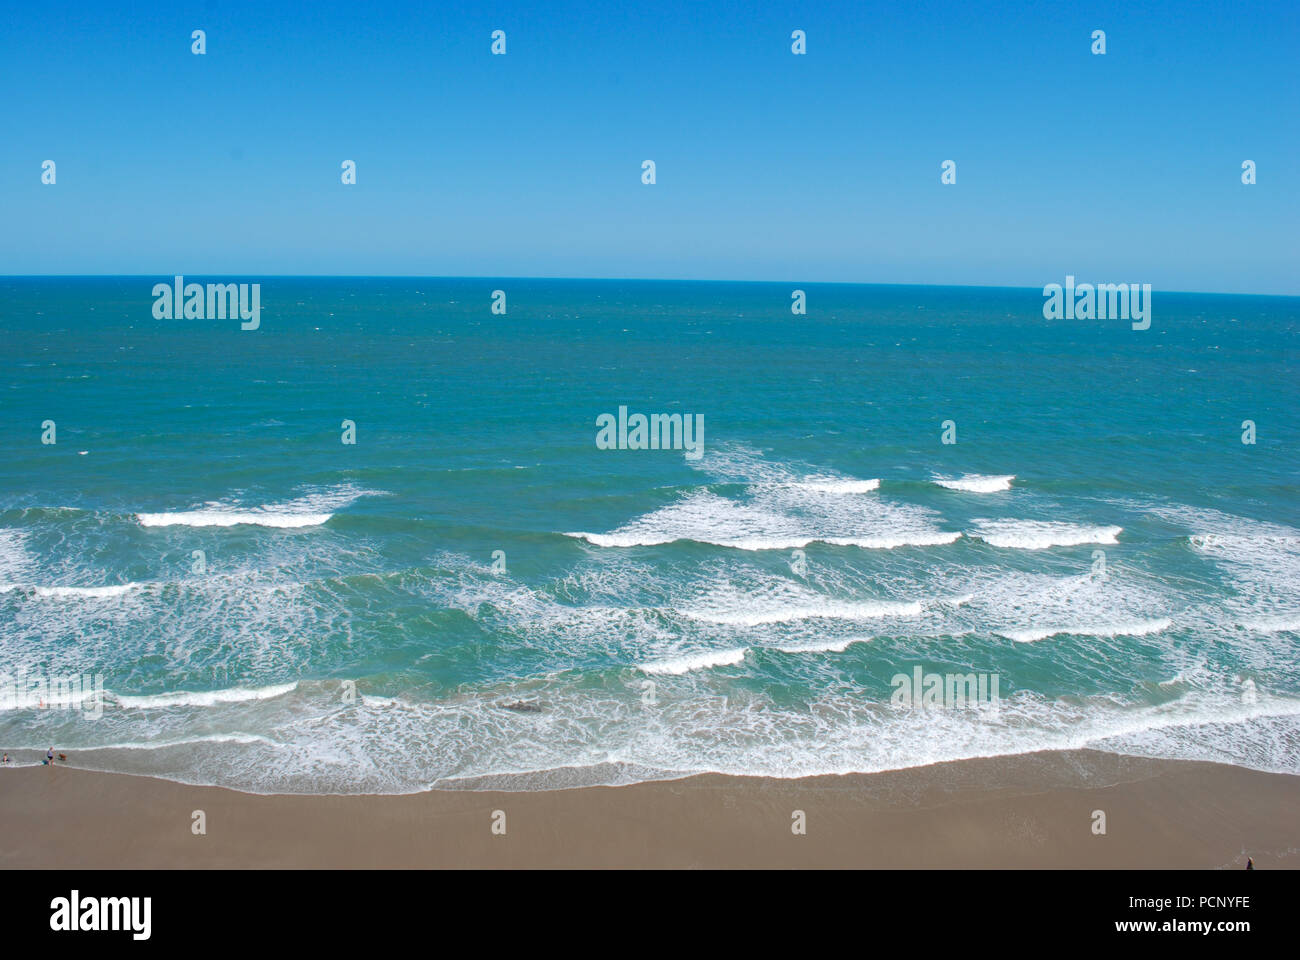 Drone view on ocean waves. Panoramic view with the emerald water of the ocean and white waves. Sea shore emerald water. Stock Photo